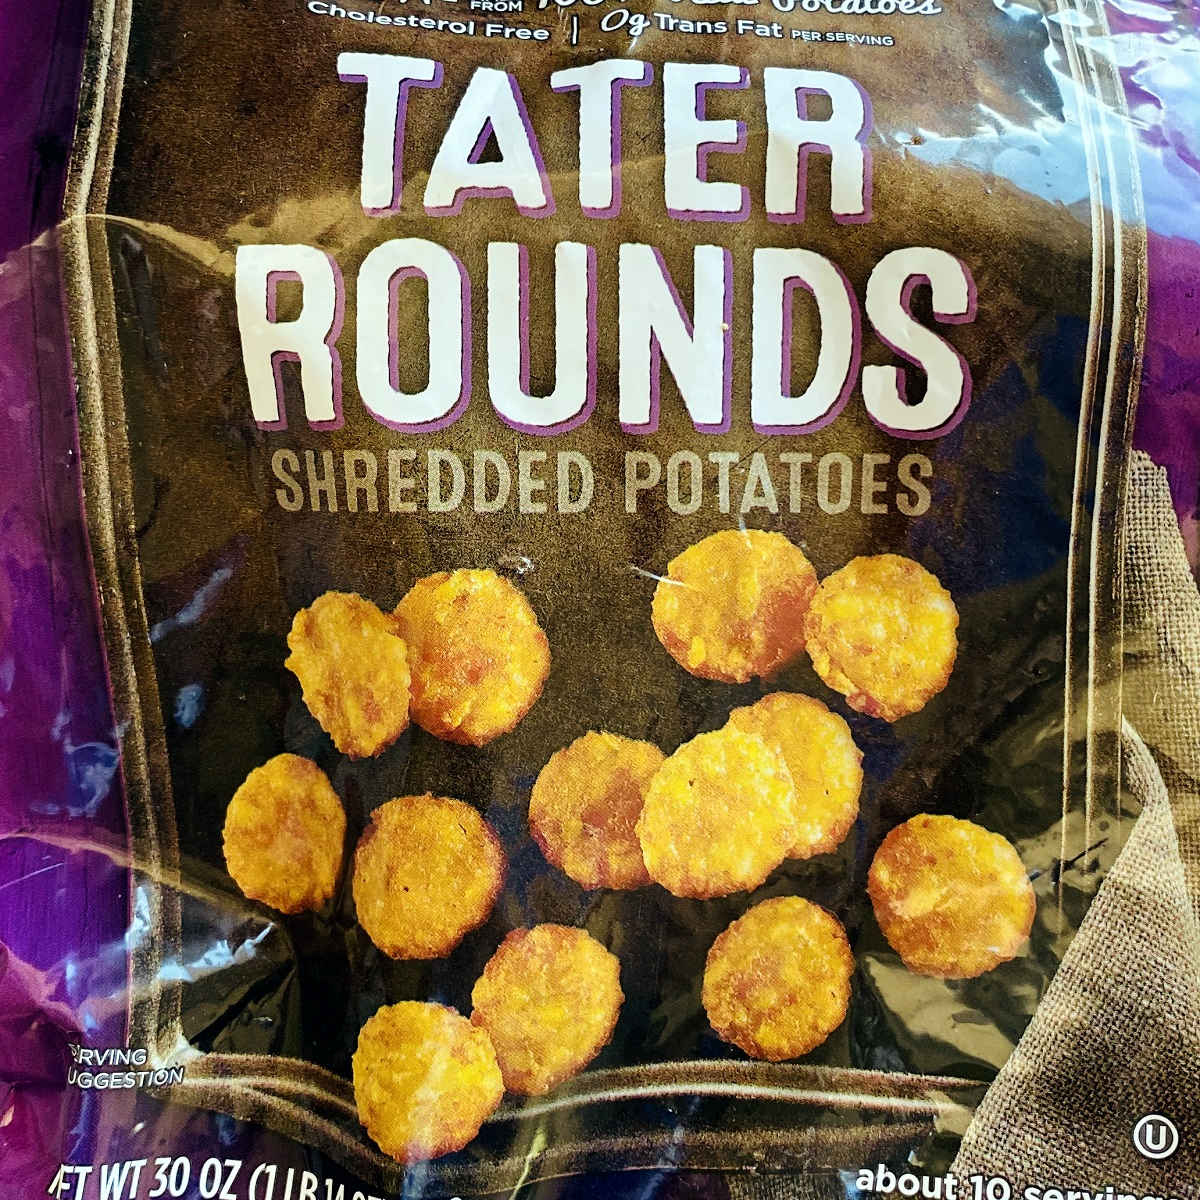 bag of tater tots or tater rounds